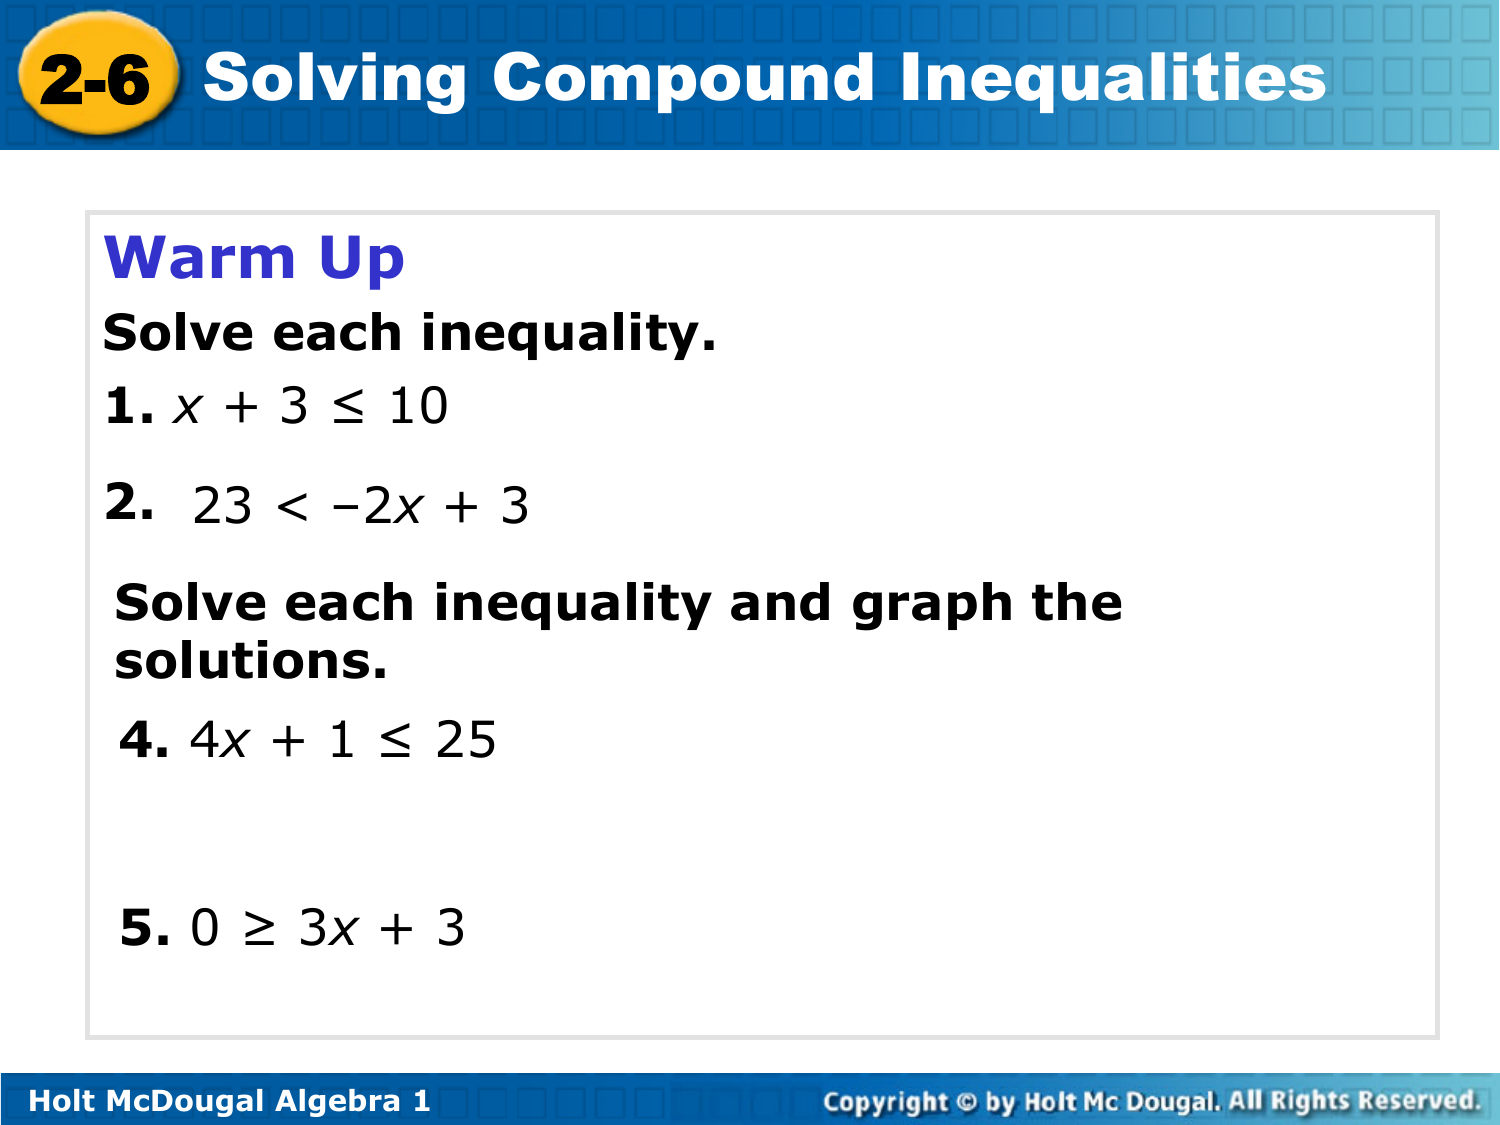 - 2-6 Solving Compound Inequalities